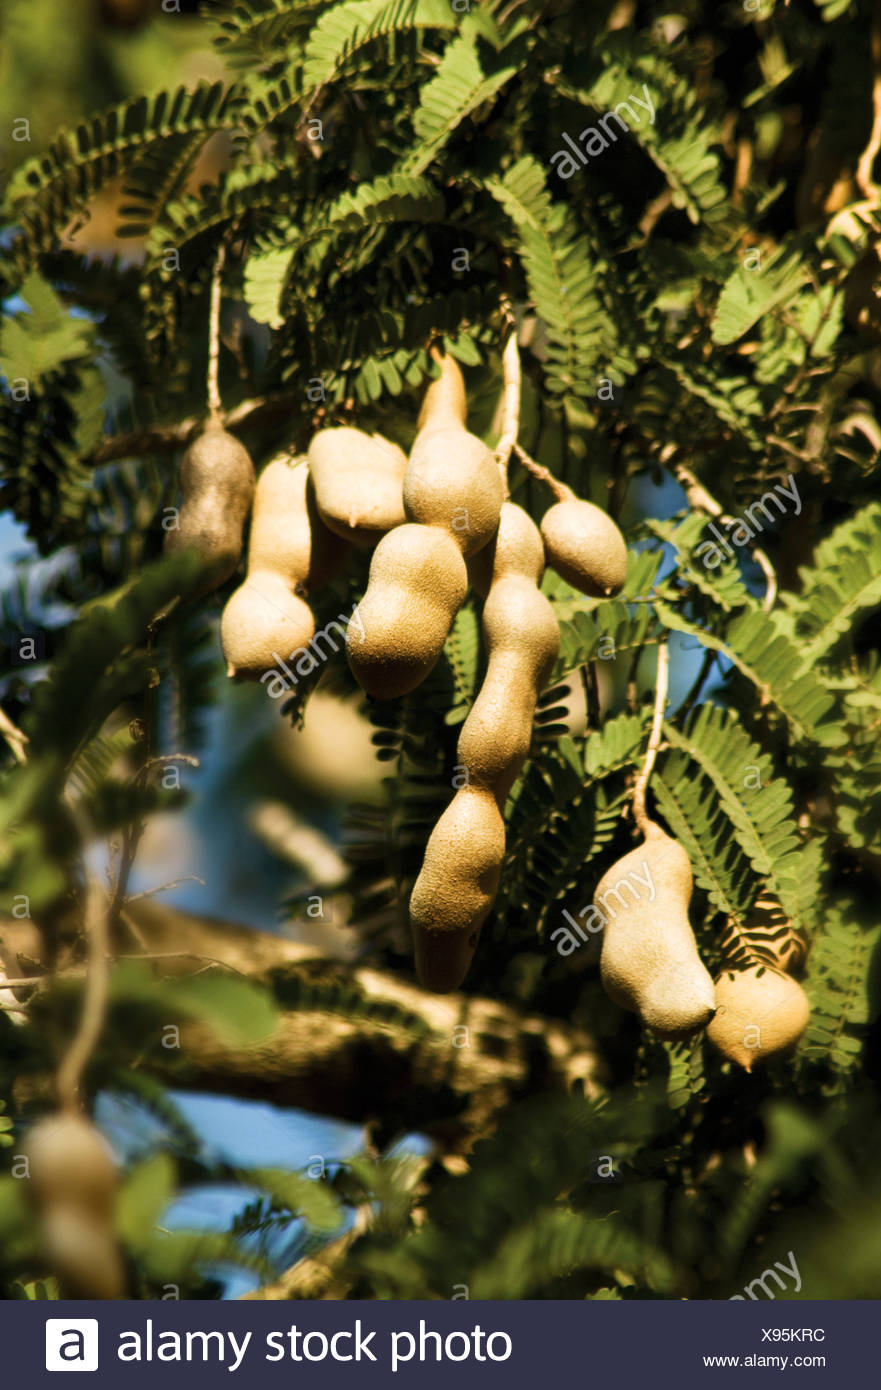 Tamarindus indica, Tamarind fruit pods growing on a tree. Stock Photo